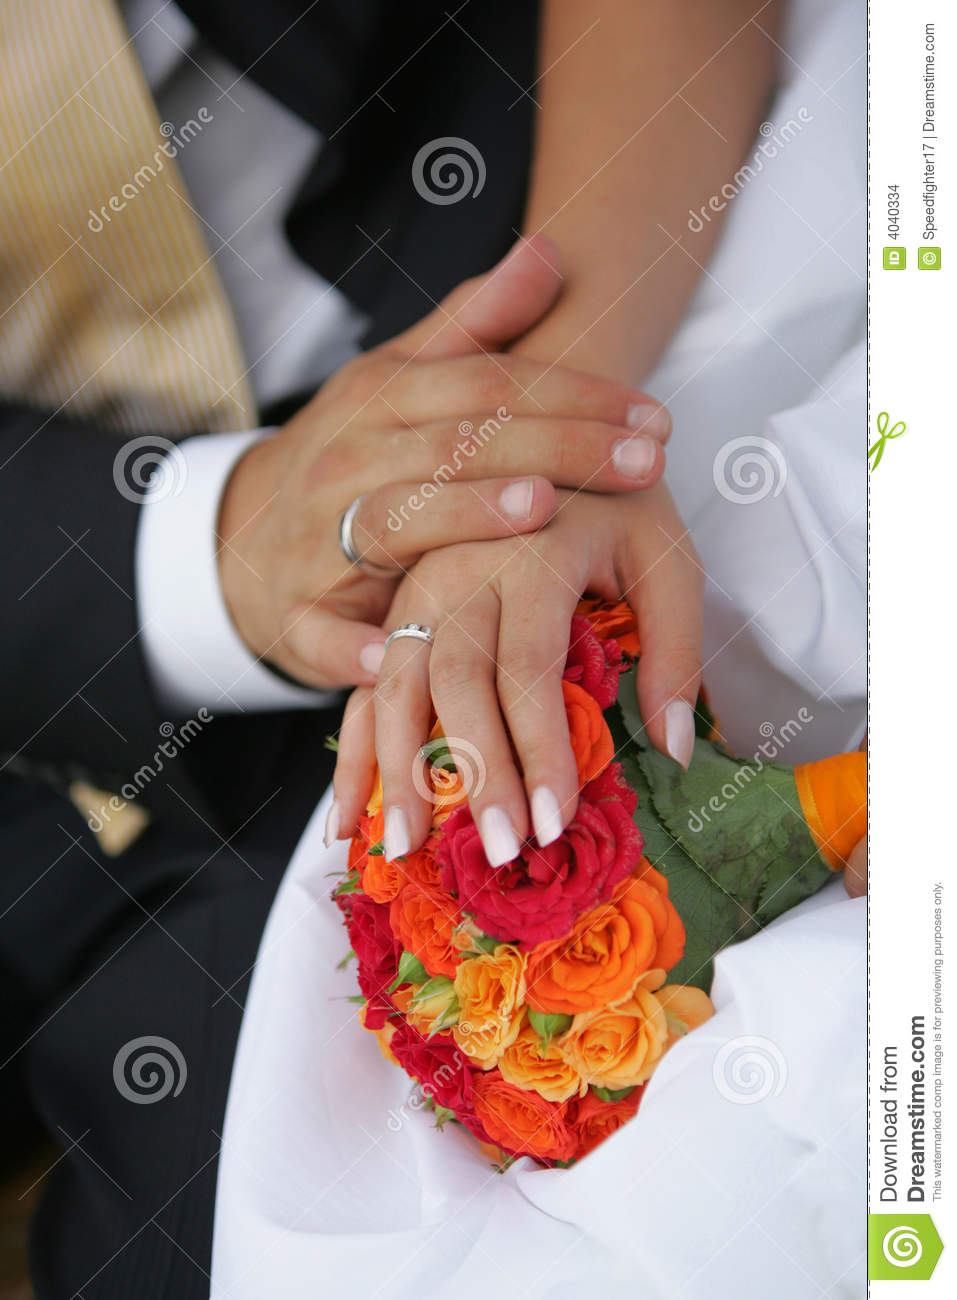 Newly Married Couples Hands Stock Photo  Image of intimacy touching 4040334